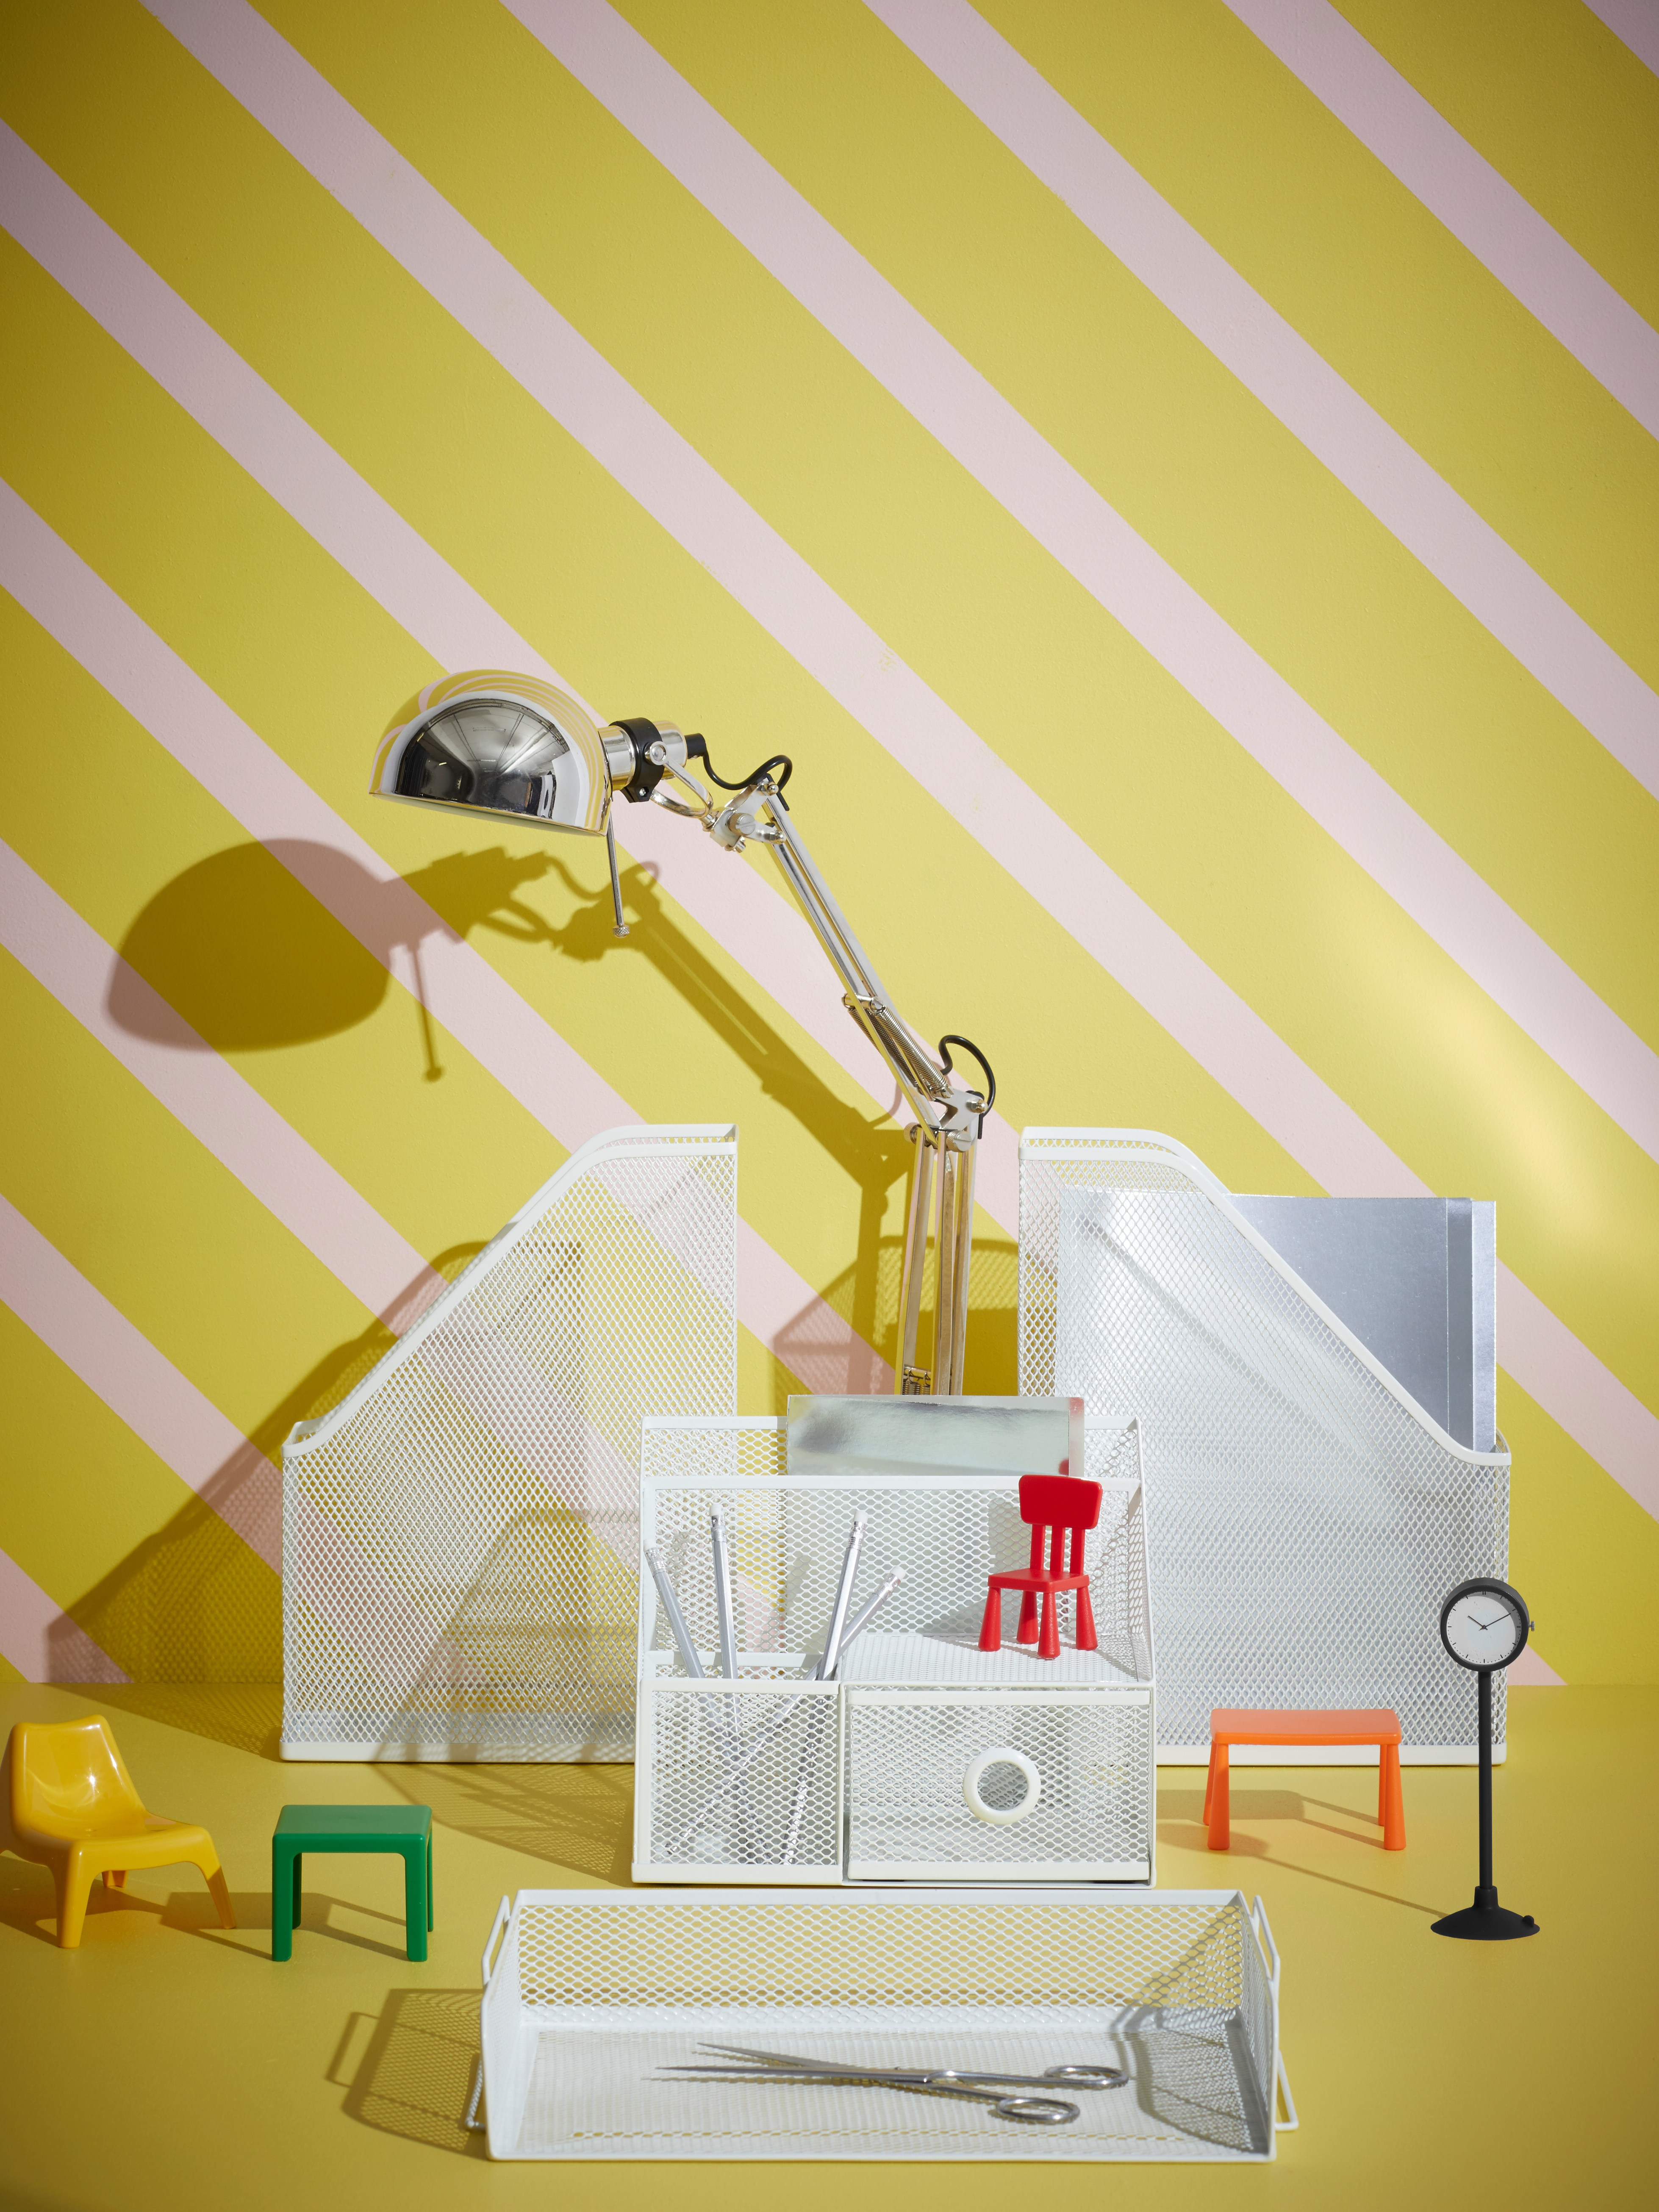 DRÖNJÖNS white steel desk organisers arranged on a yellow and pink striped background with a work lamp and toy furniture.